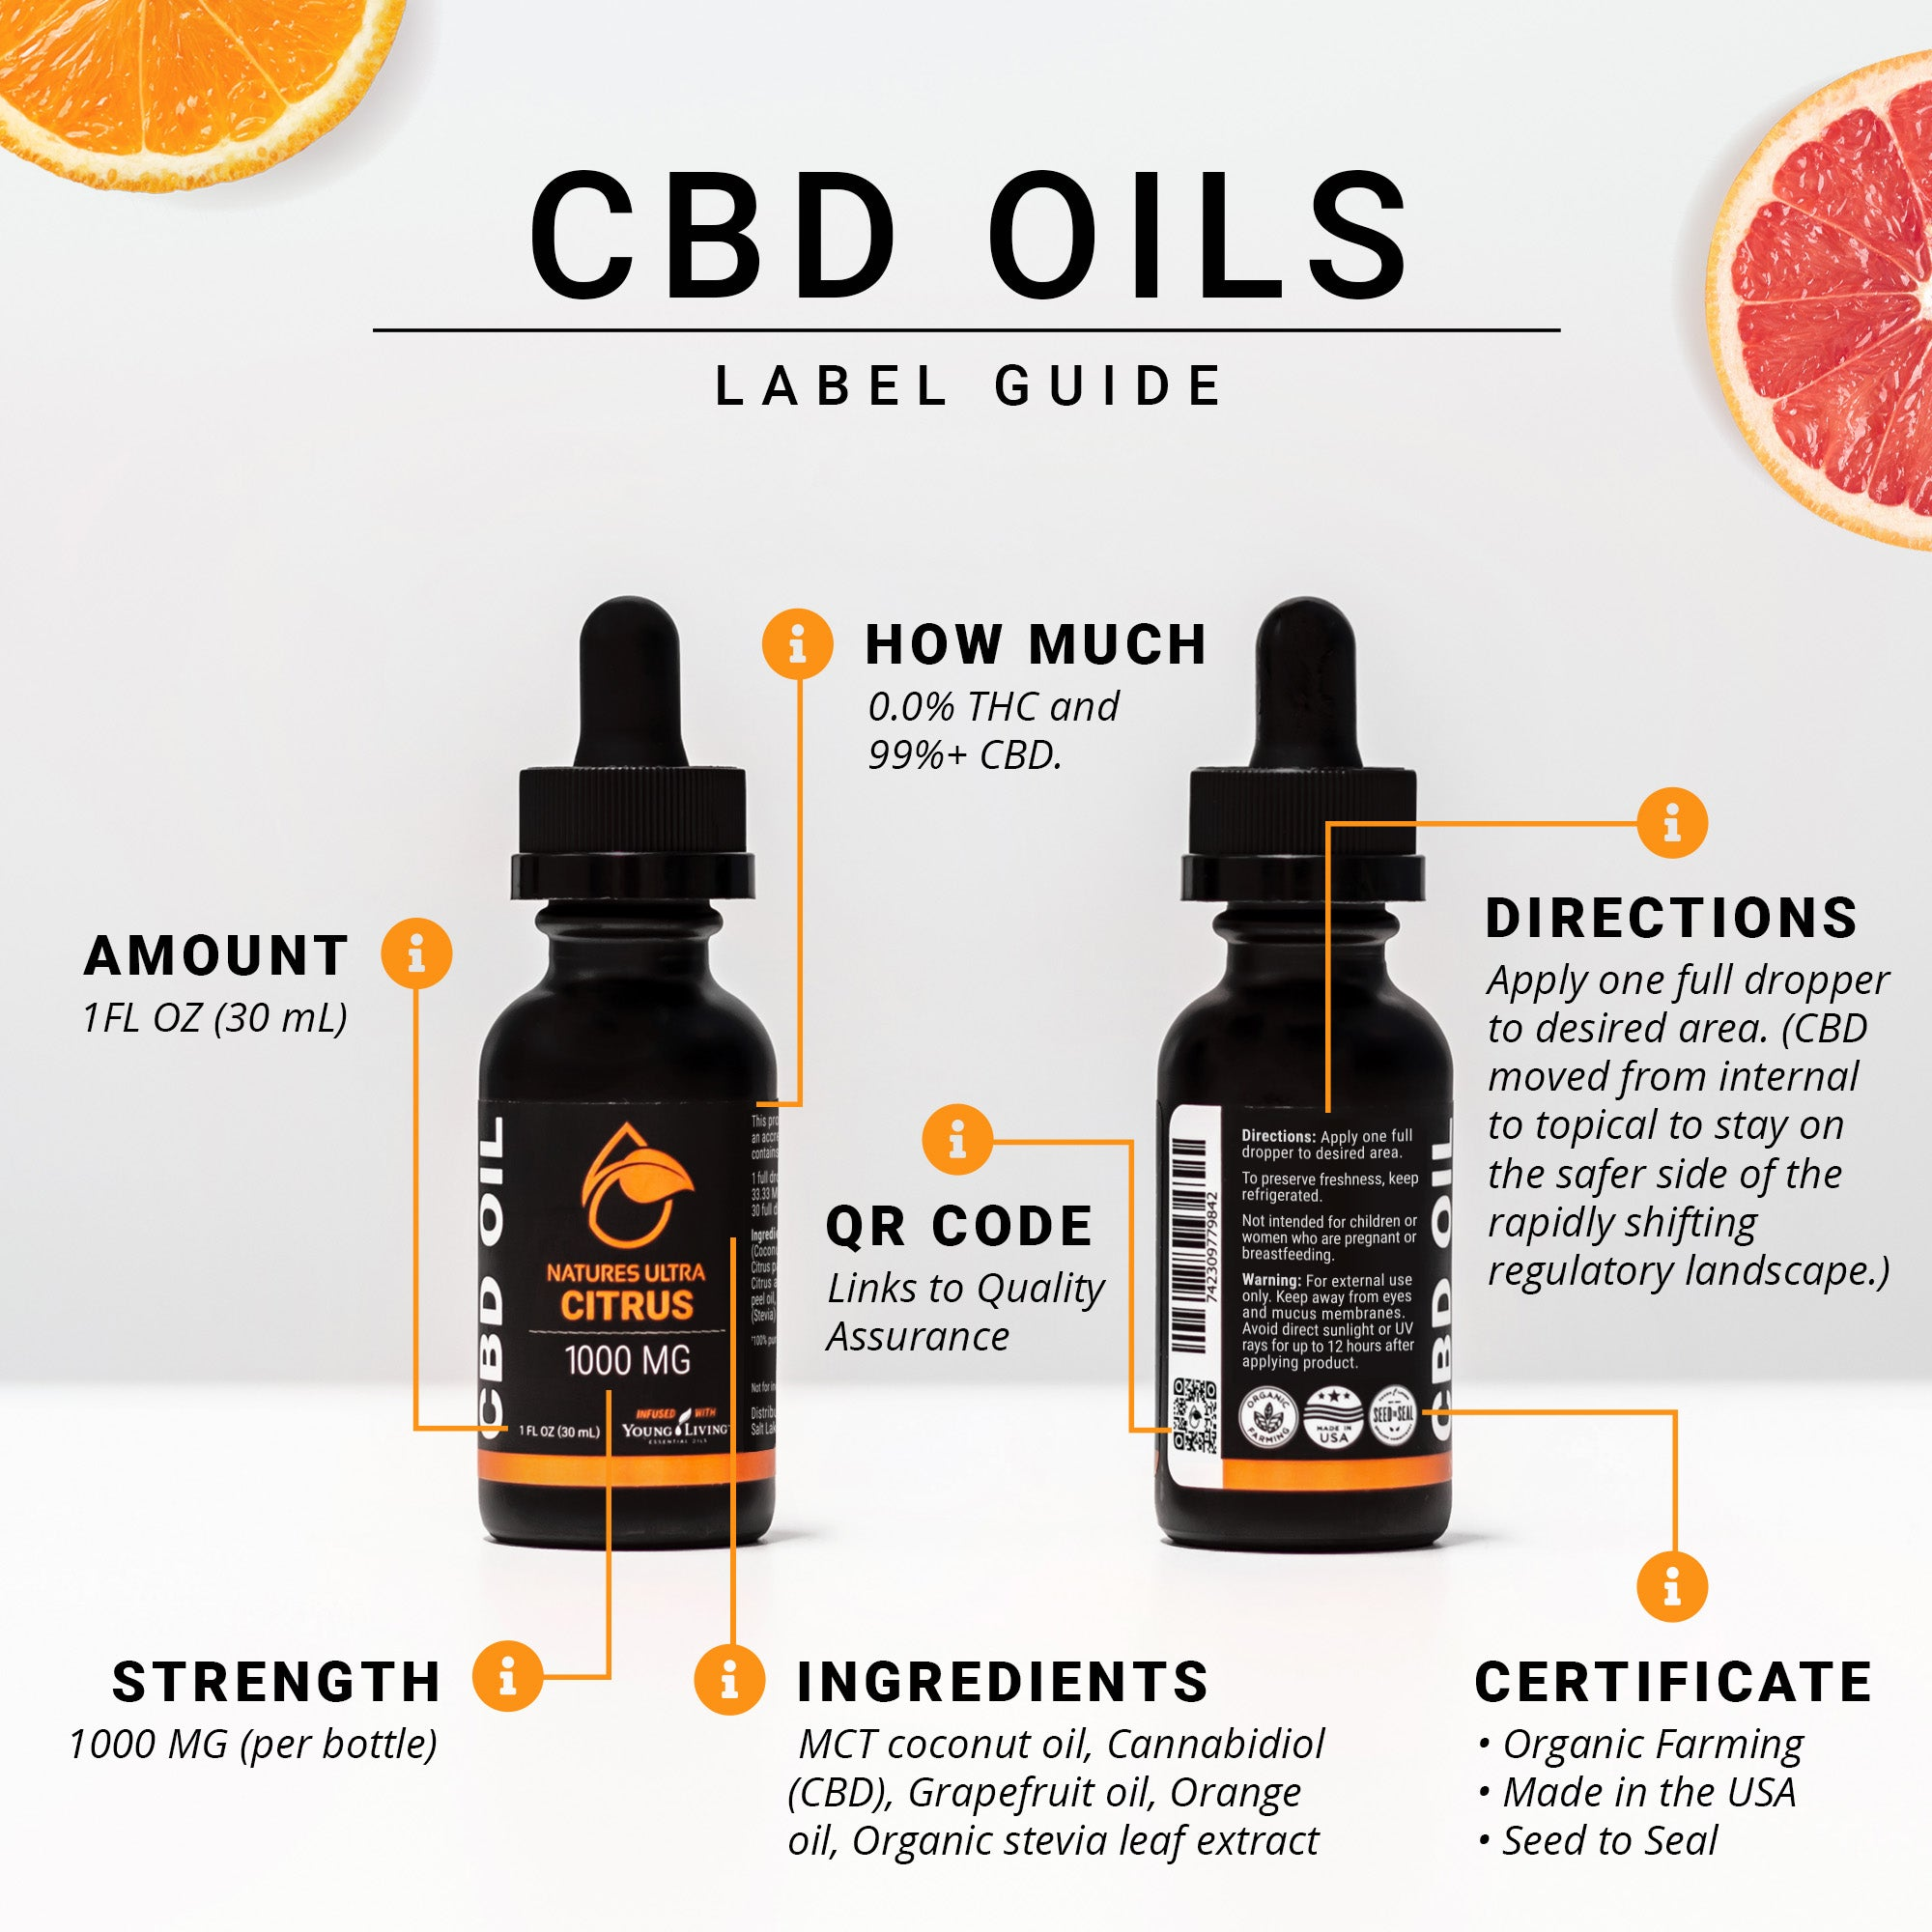 Nature's Ultra CBD Oils Label Guide